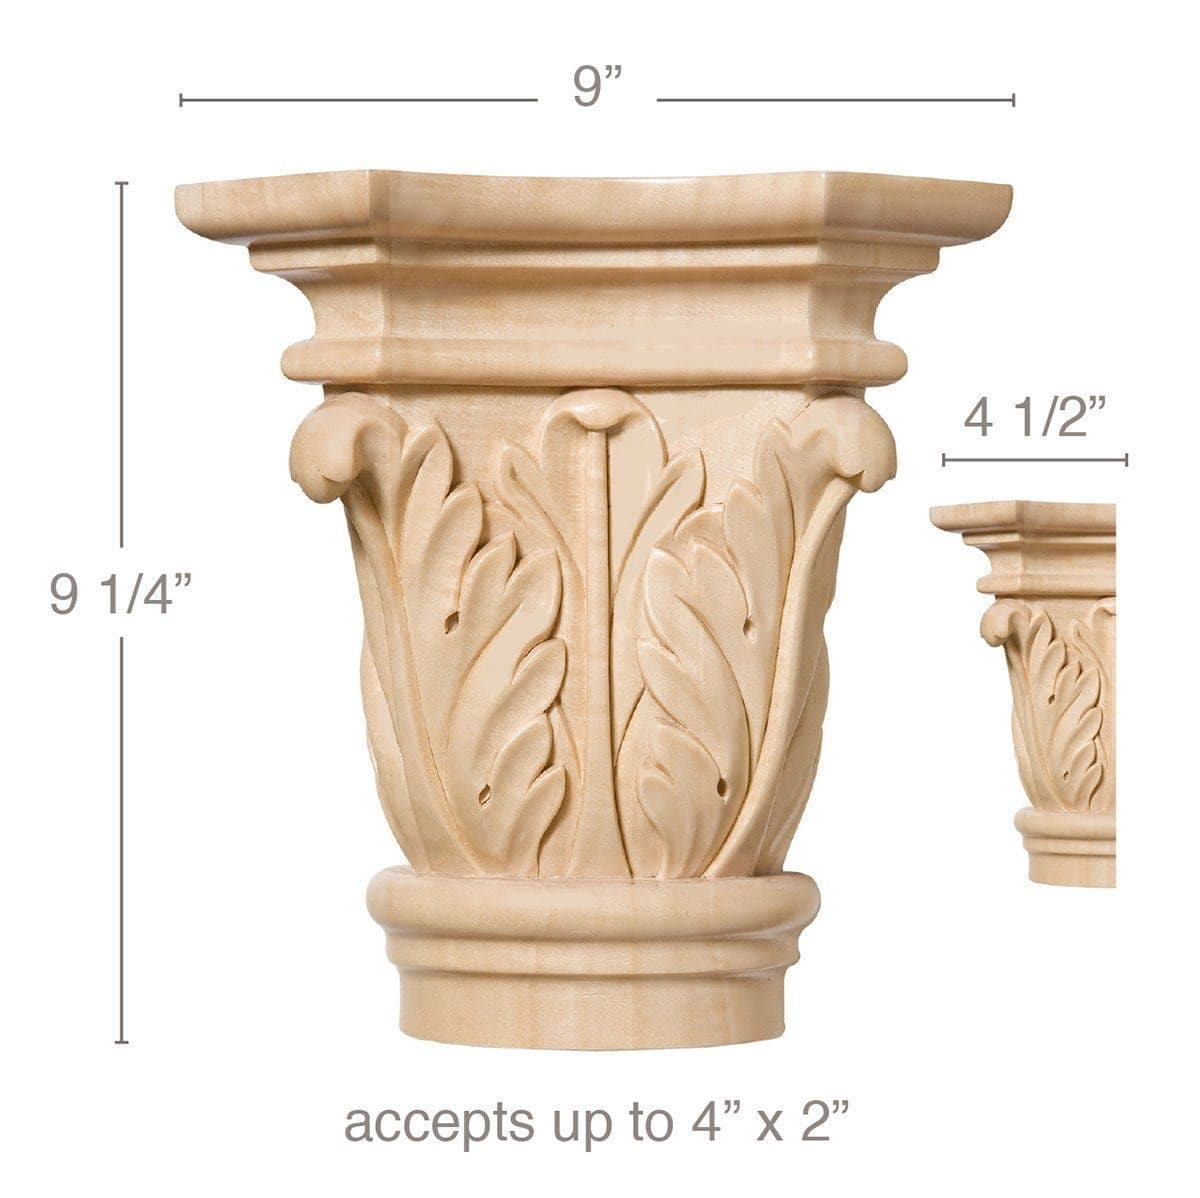 "Grand Acanthus Capital, 9""w x 9 1/4""h x 4 1/2""d, (accepts up to 4""w x 2""d)"